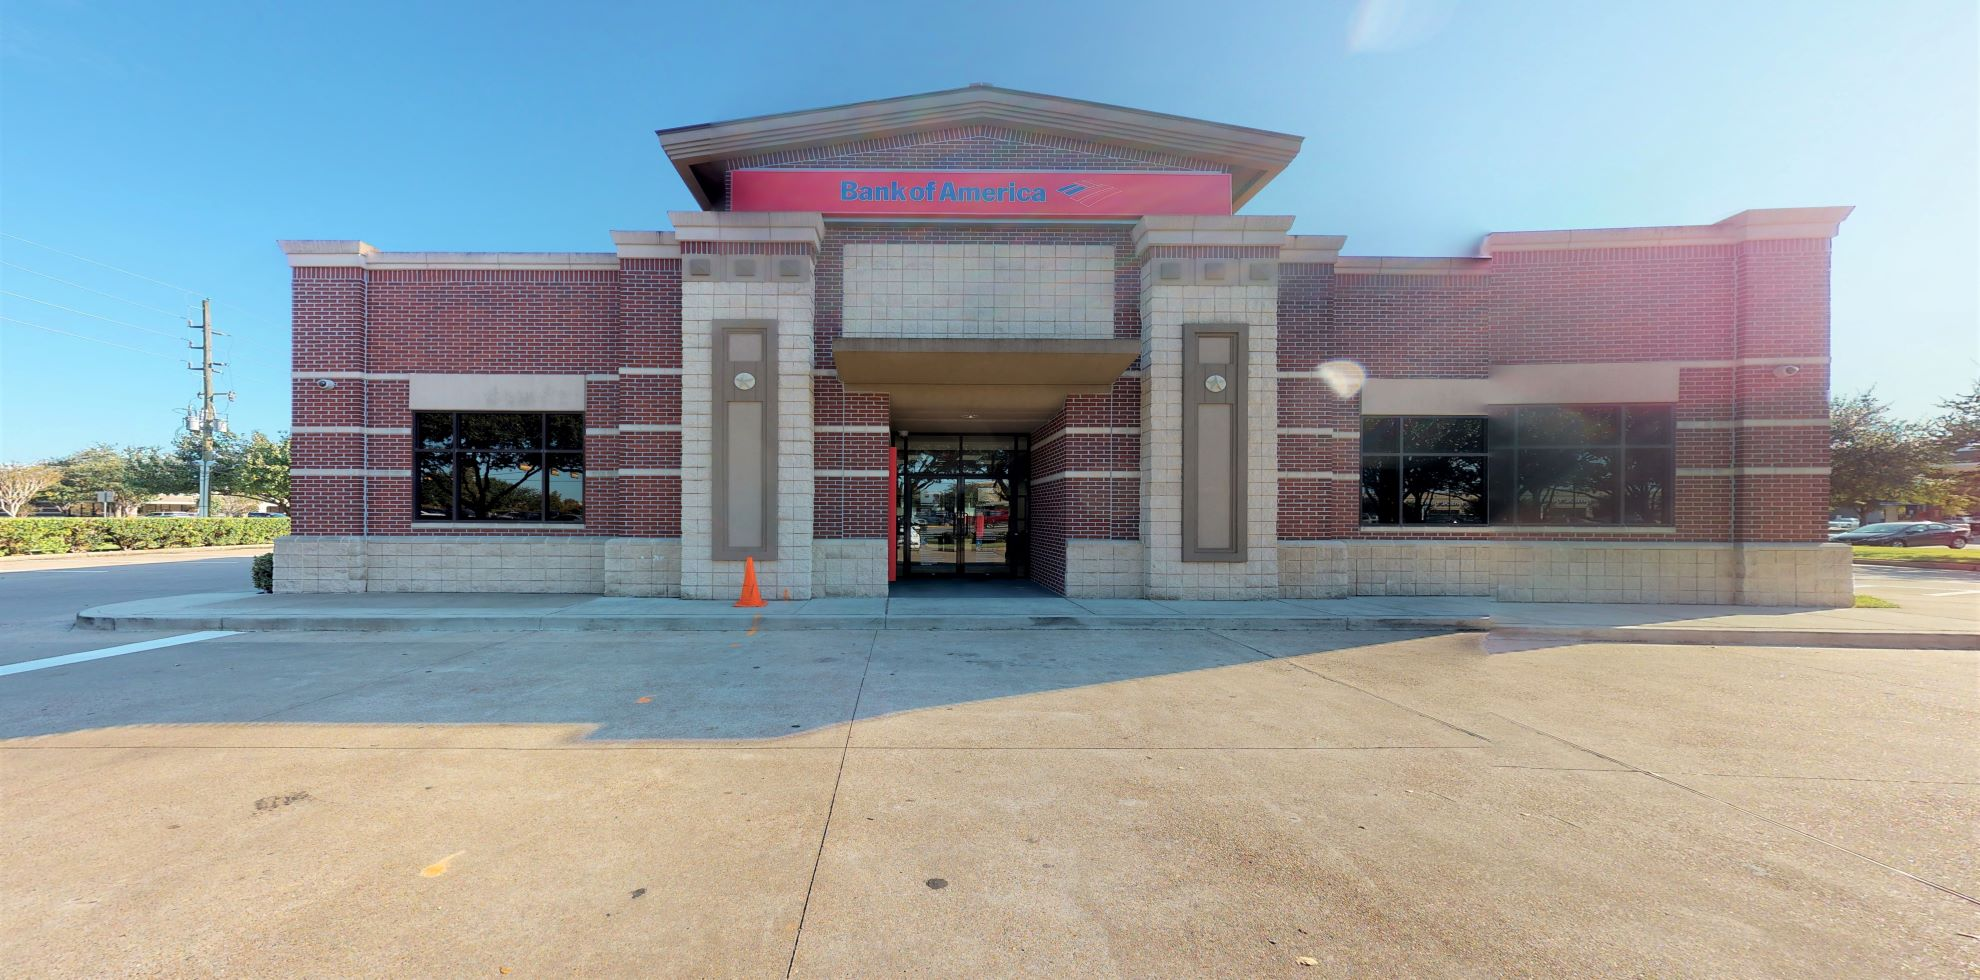 Bank of America financial center with drive-thru ATM | 10200 Broadway St, Pearland, TX 77584